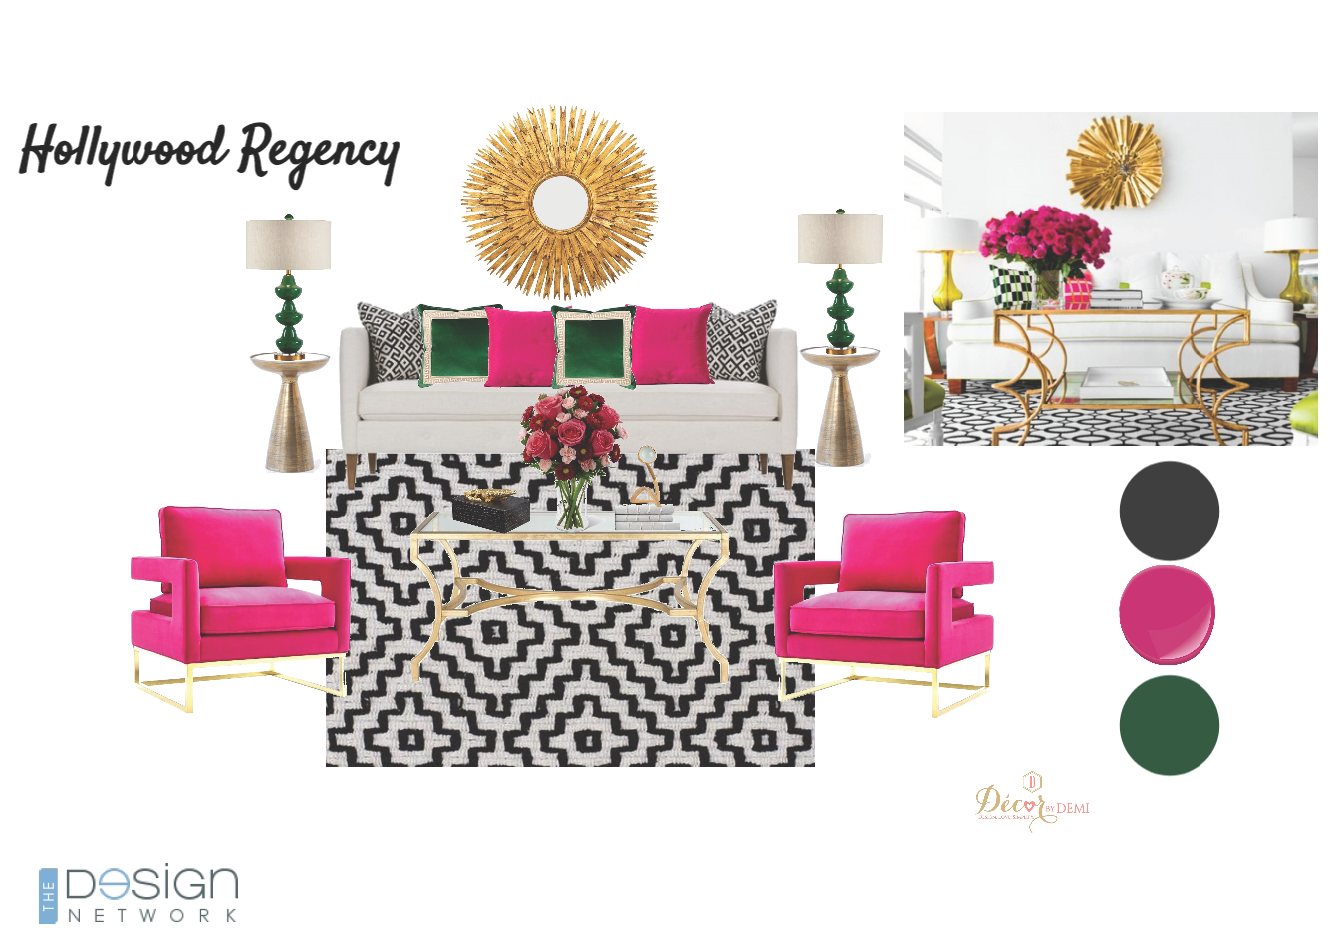 decor_by_demi_hollywood_regency_interior_design.png